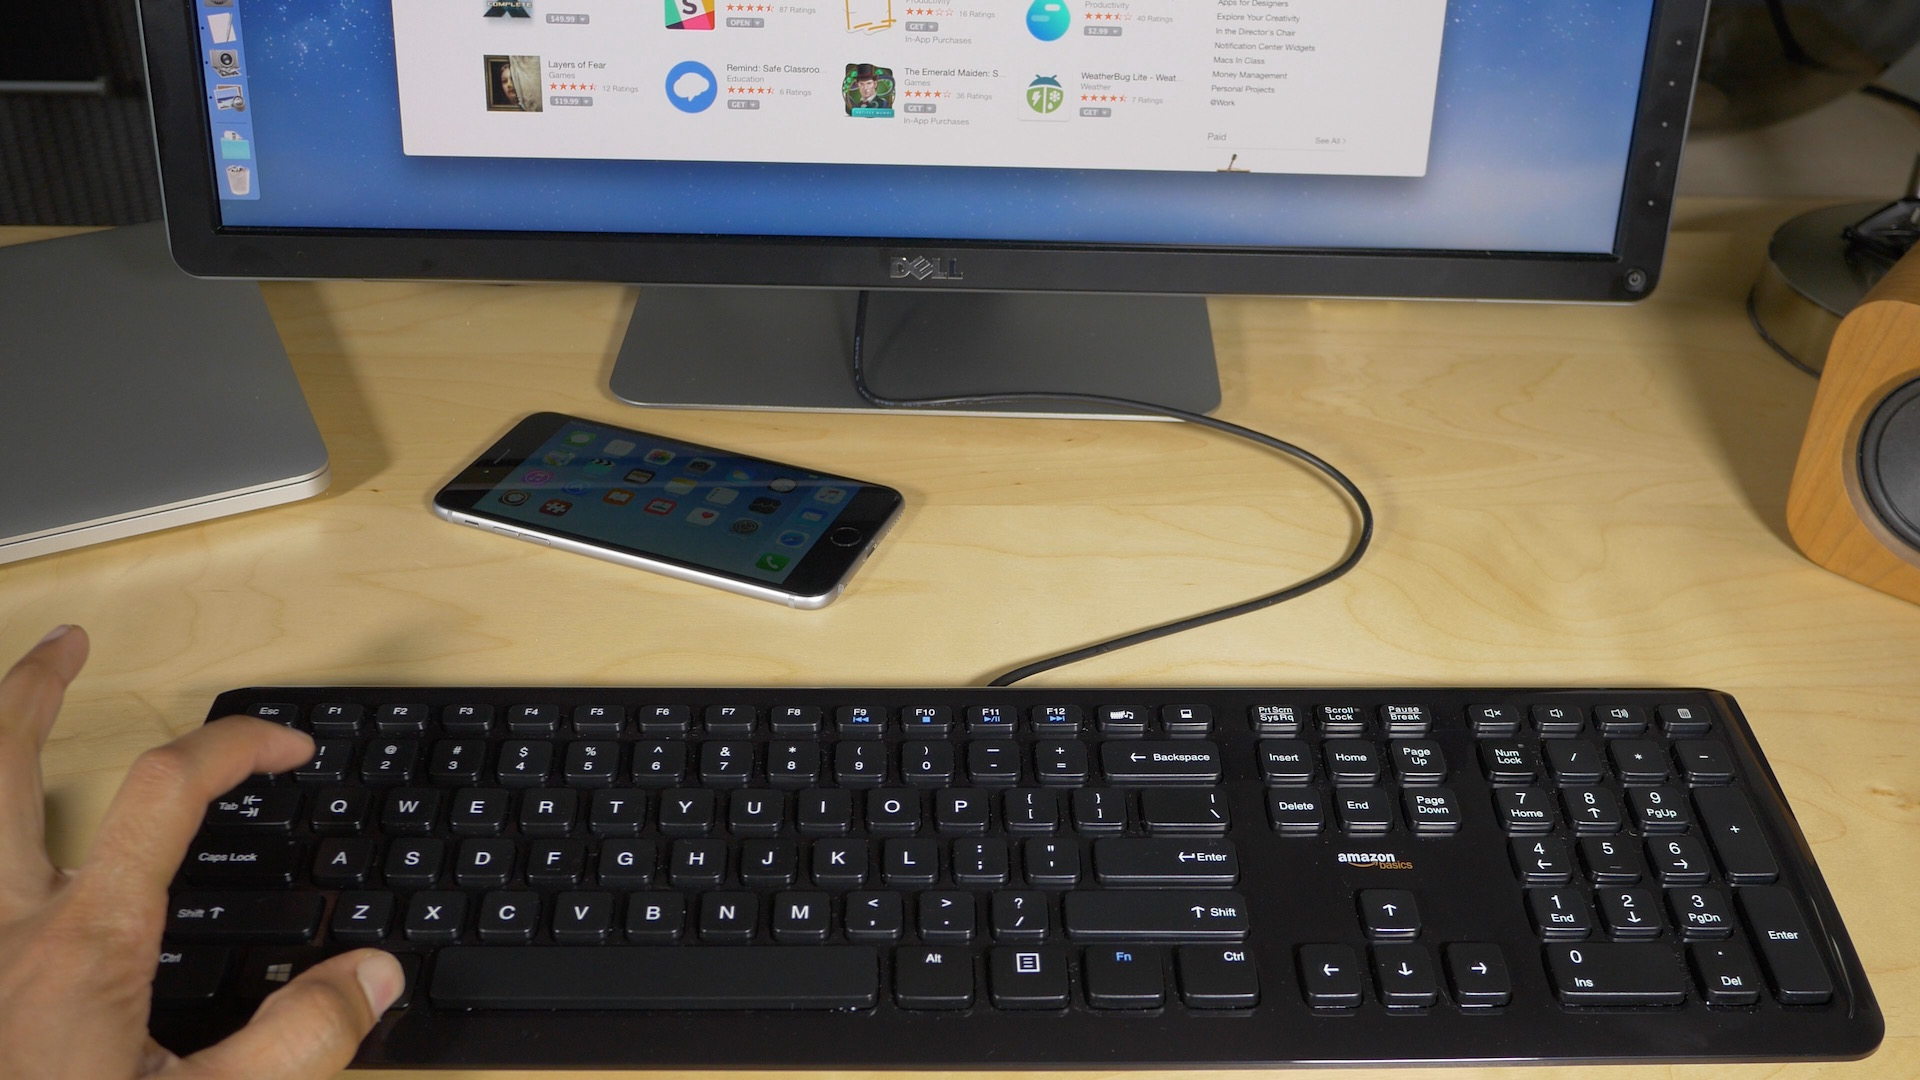 How to take a screenshot on a mac with dell keyboard